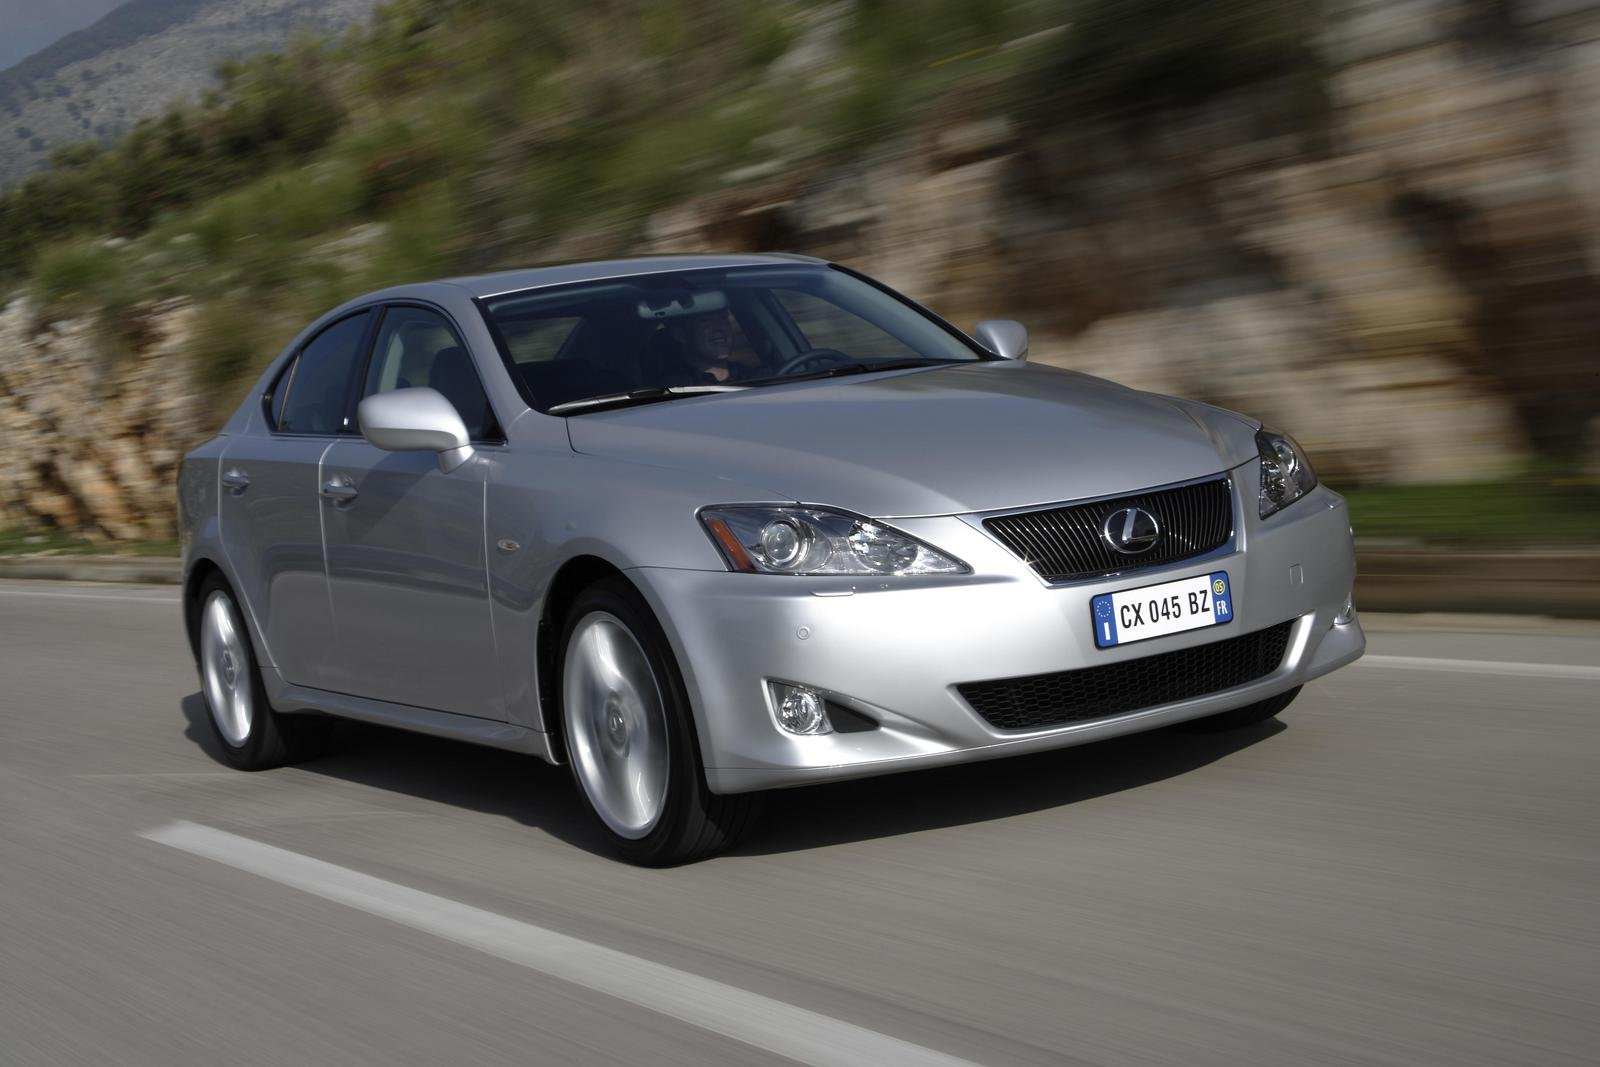 2007 lexus is 250 picture 169037 car review top speed. Black Bedroom Furniture Sets. Home Design Ideas